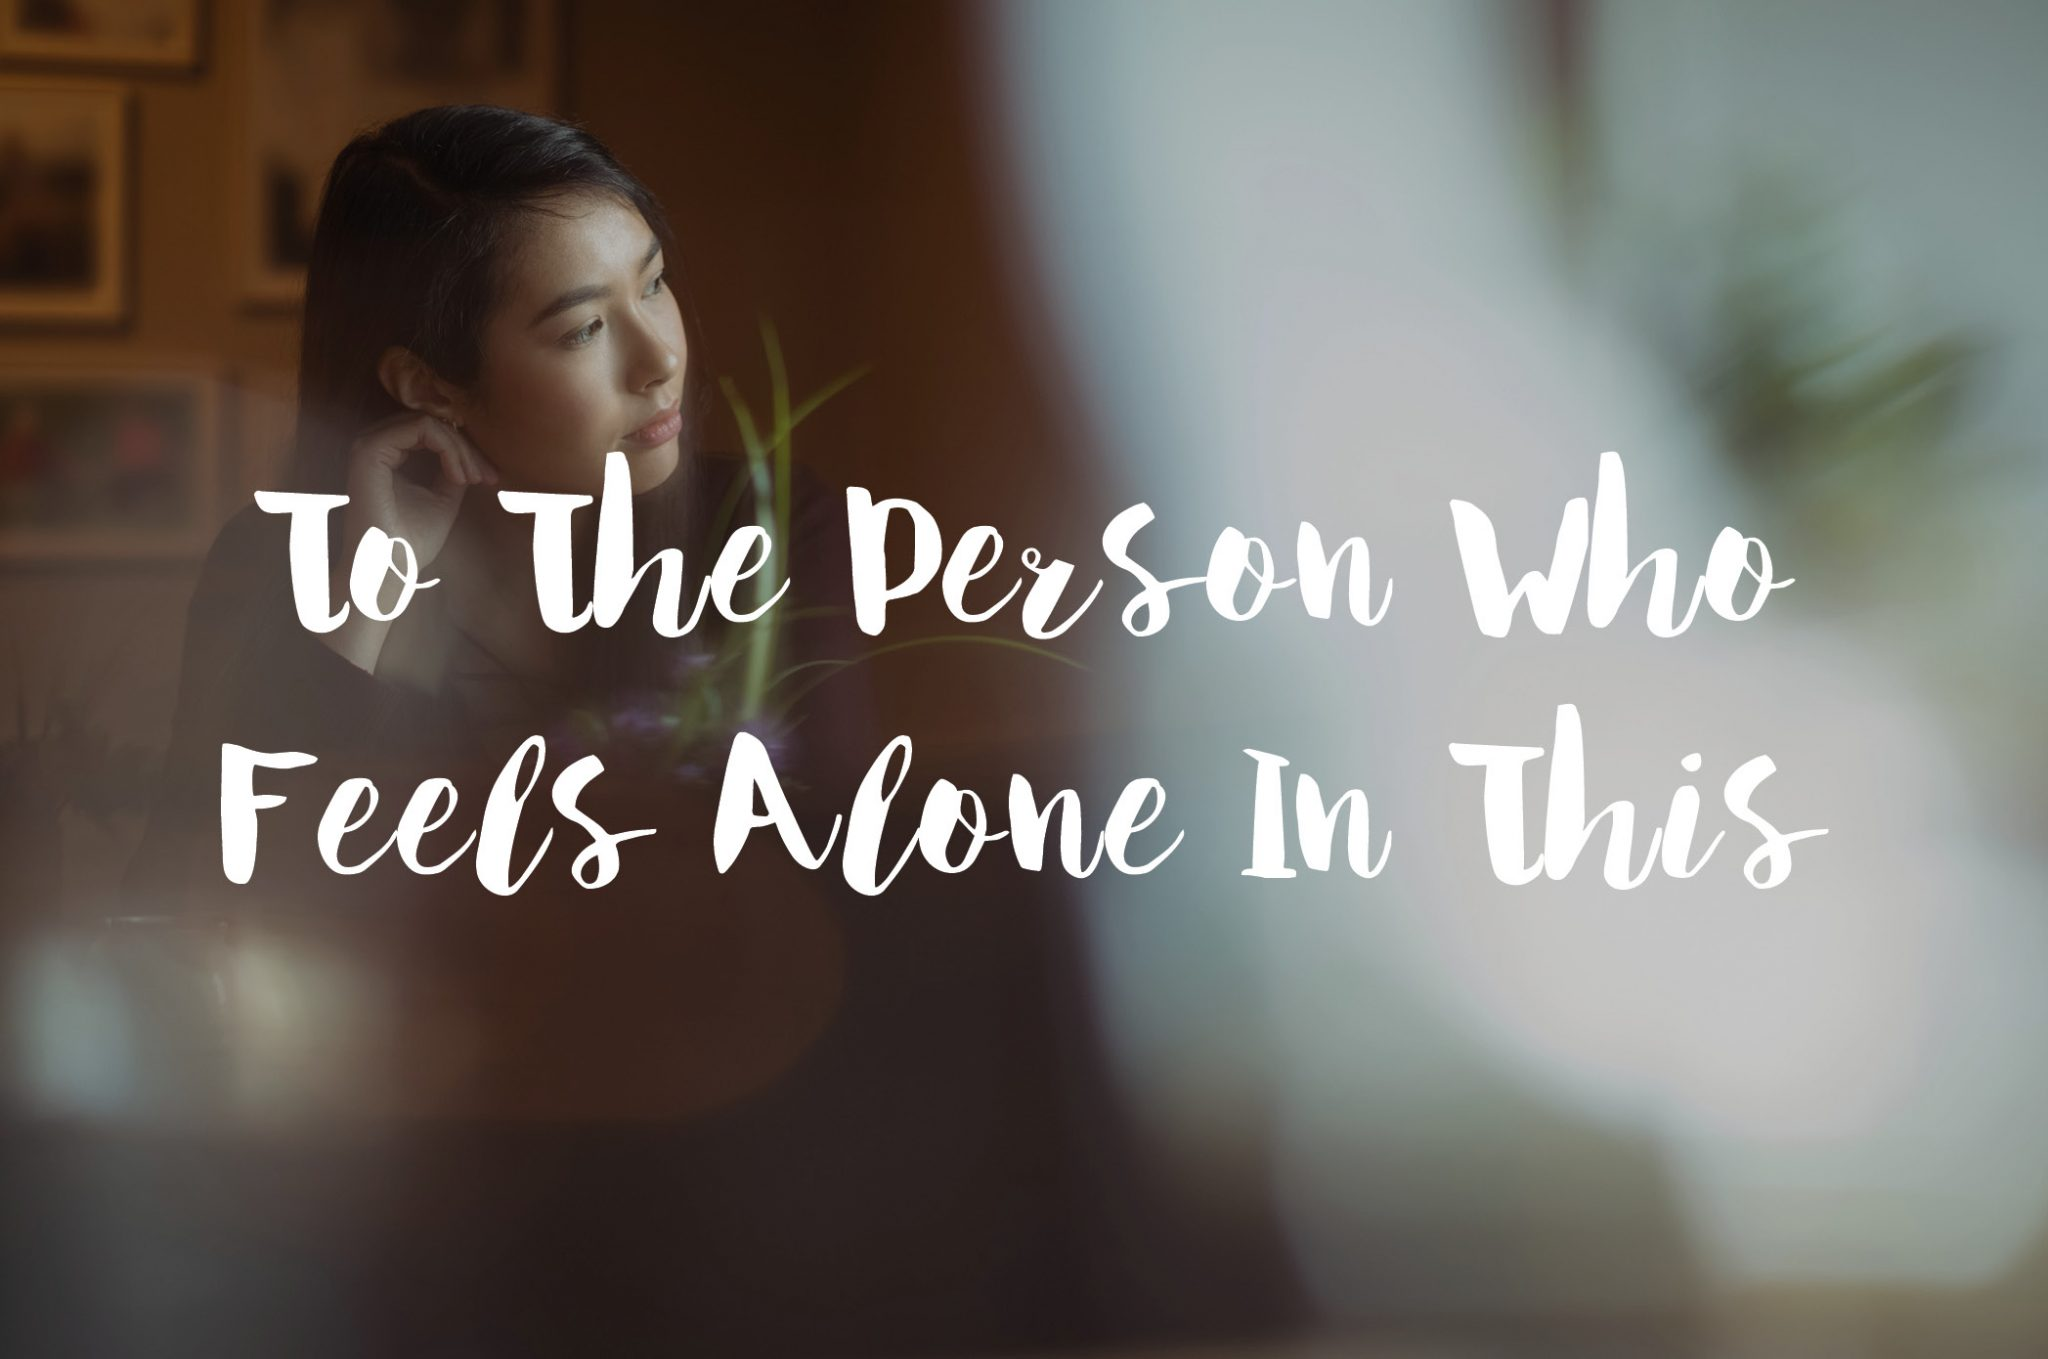 To the person who feels alone in this